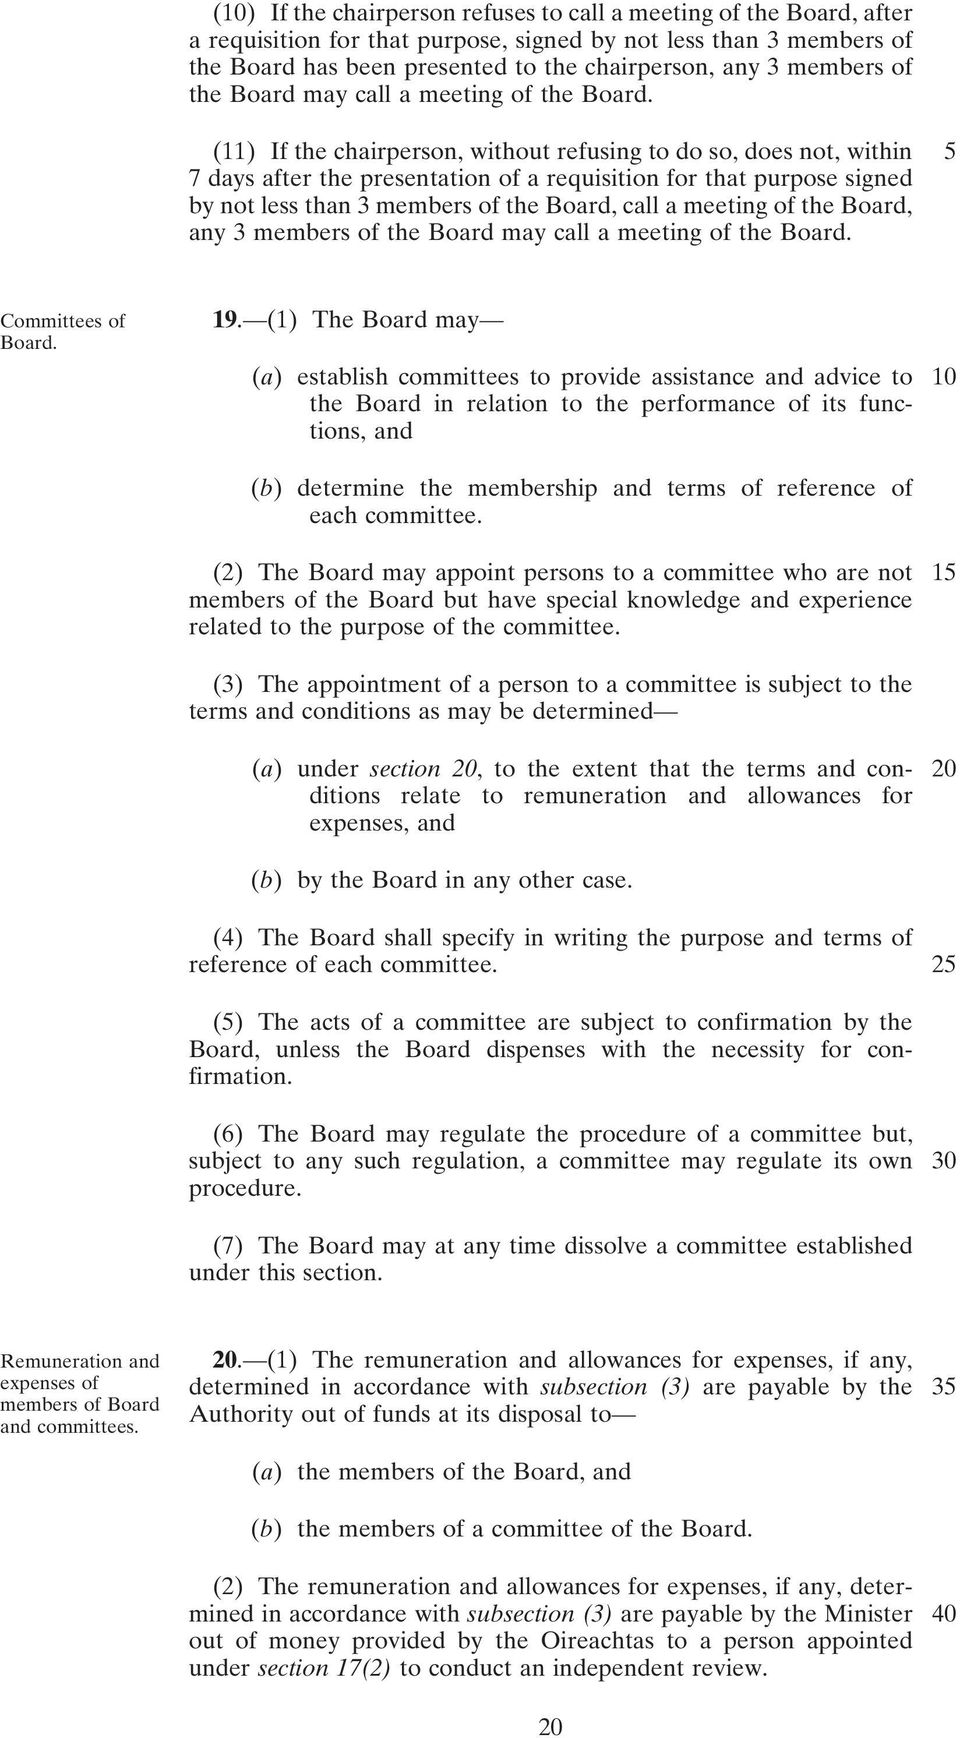 (11) If the chairperson, without refusing to do so, does not, within 5 7 days after the presentation of a requisition for that purpose signed by not less than 3 members of the Board, call a meeting